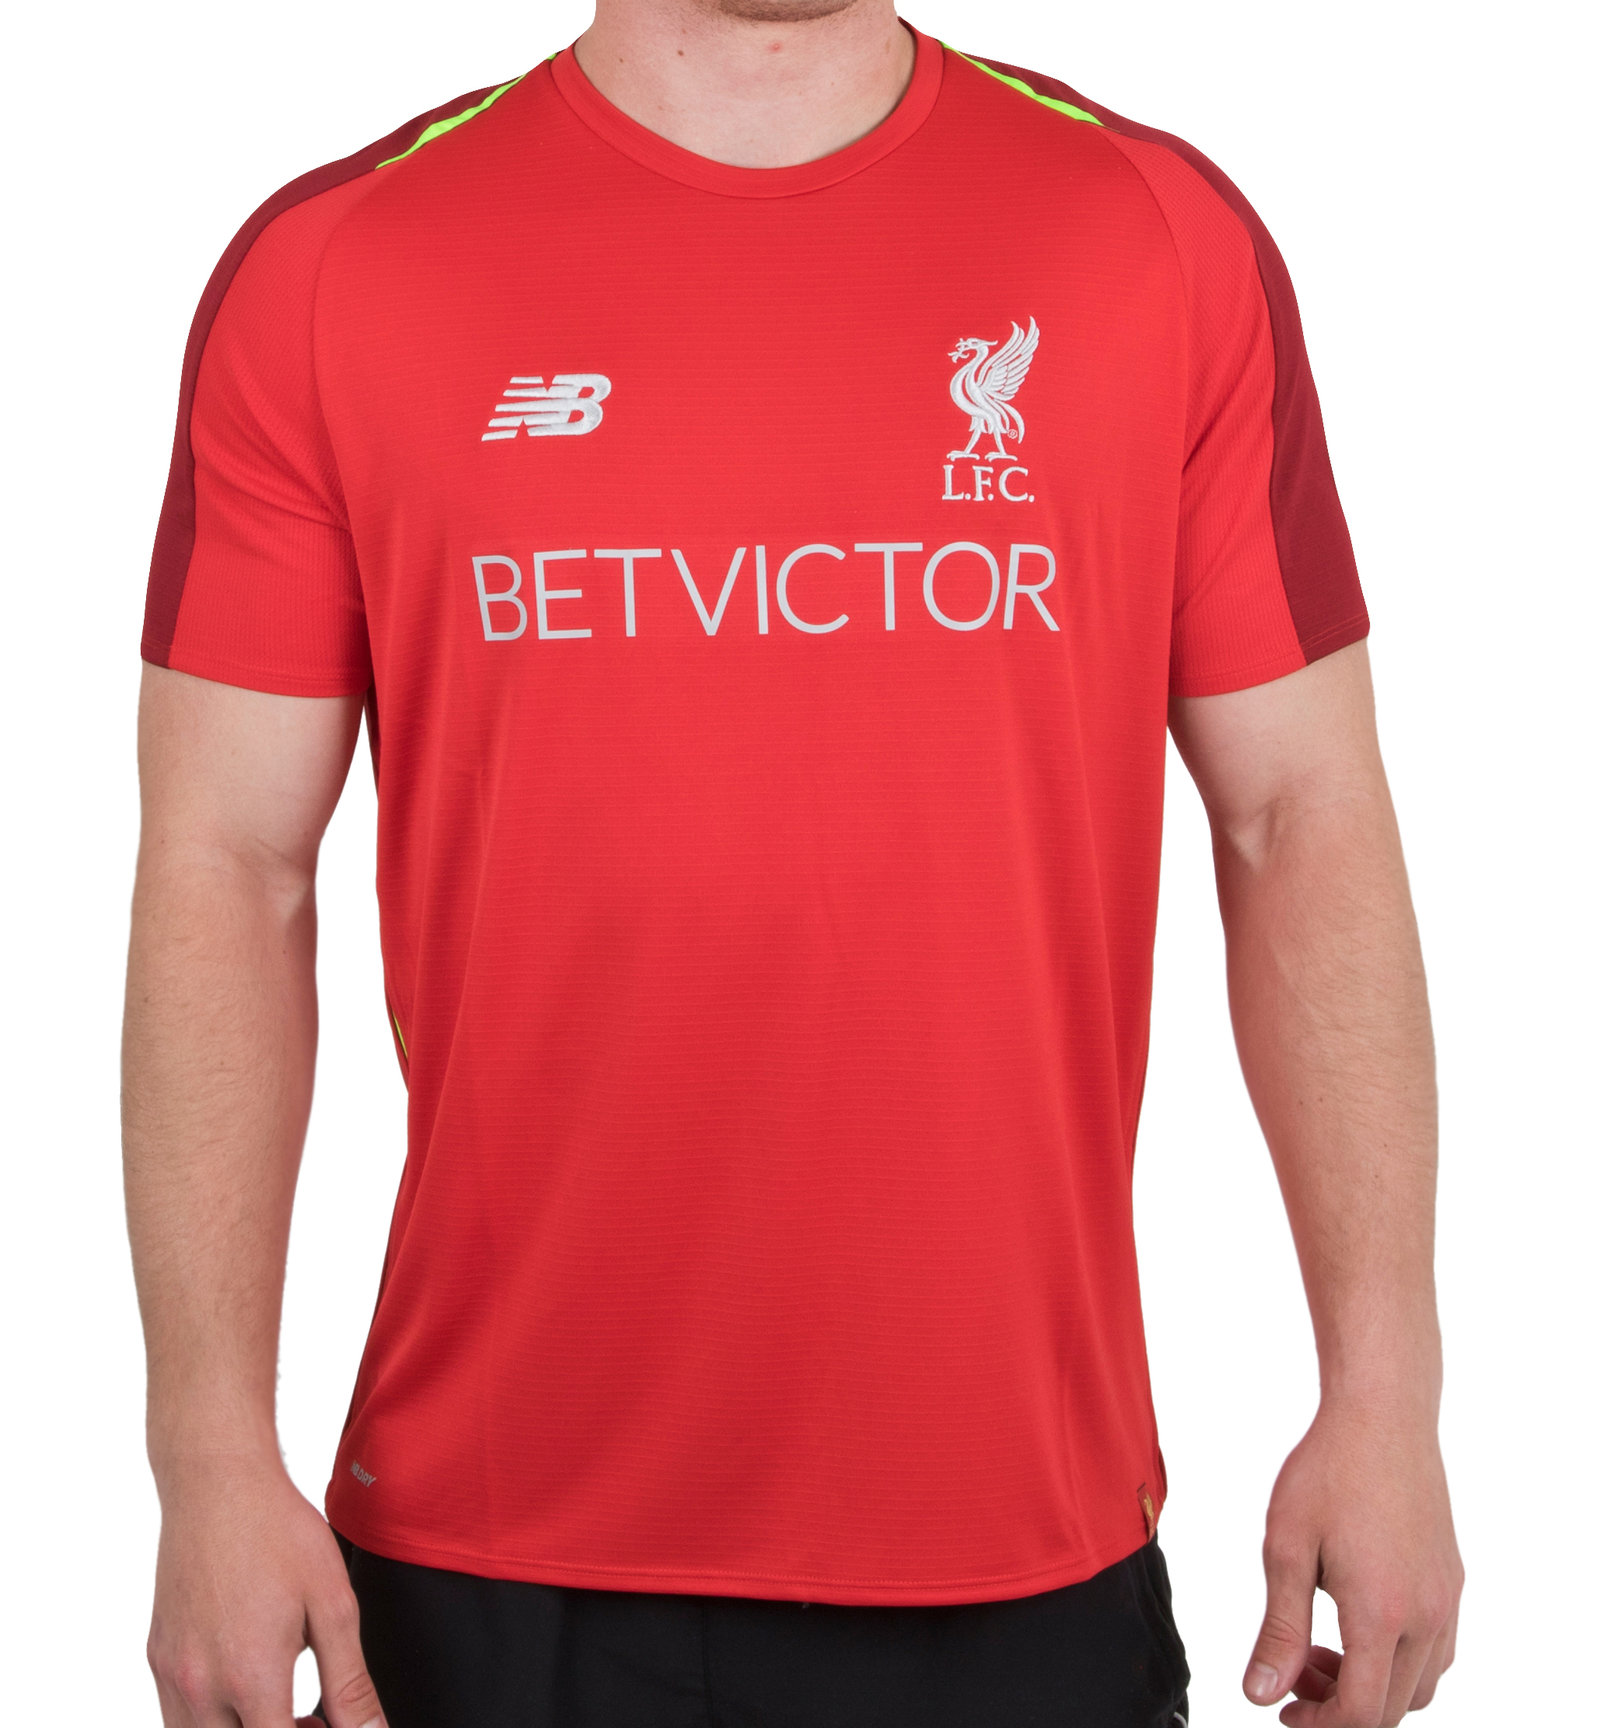 sehen neuesten Stil von 2019 überlegene Materialien Details about New Balance Mens Liverpool FC 18/19 Elite Football Training  Shirt Red Sports